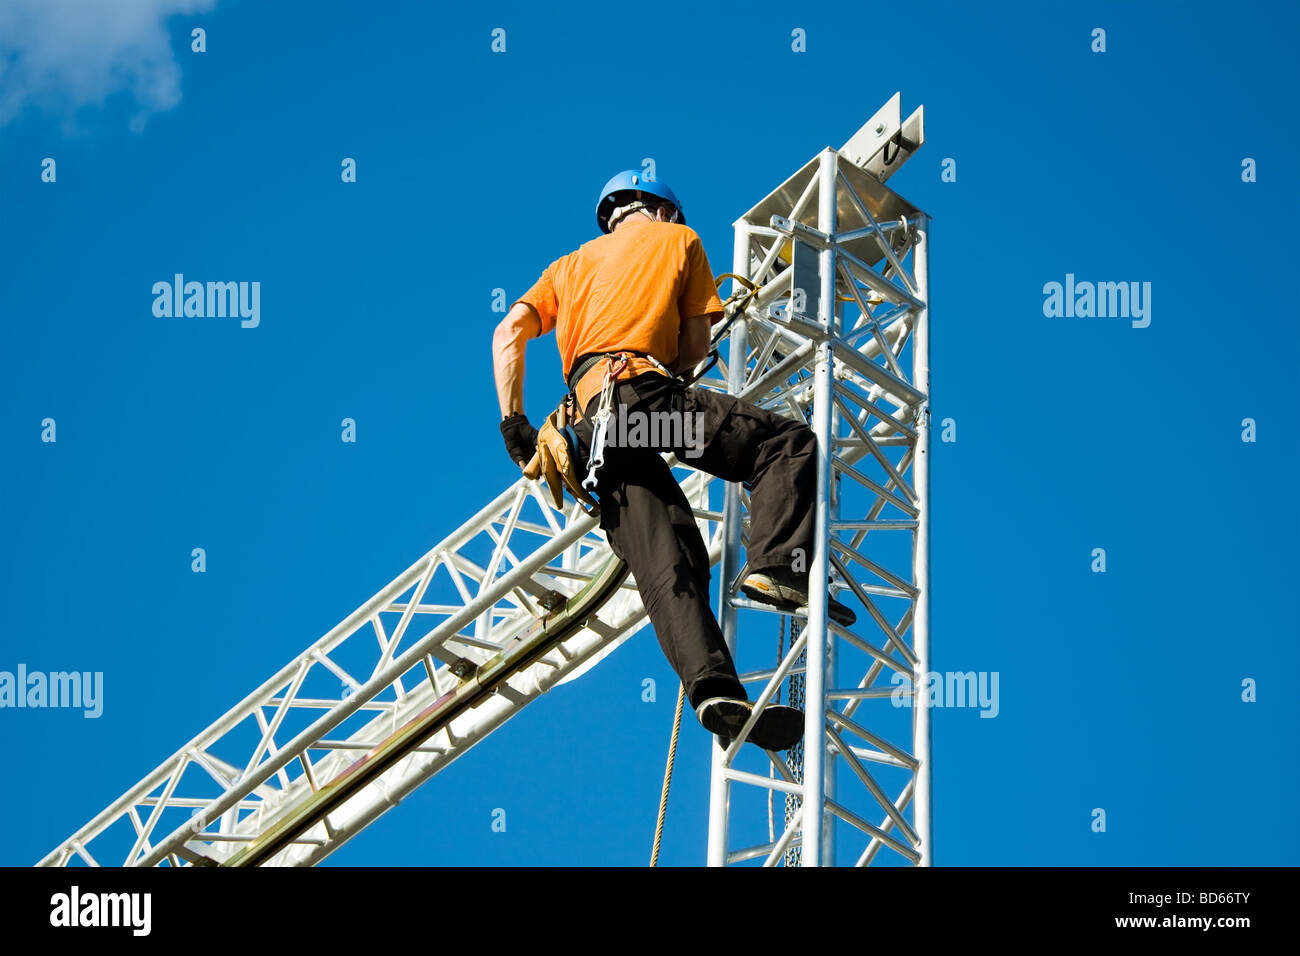 Putting up of a stage - Stock Image